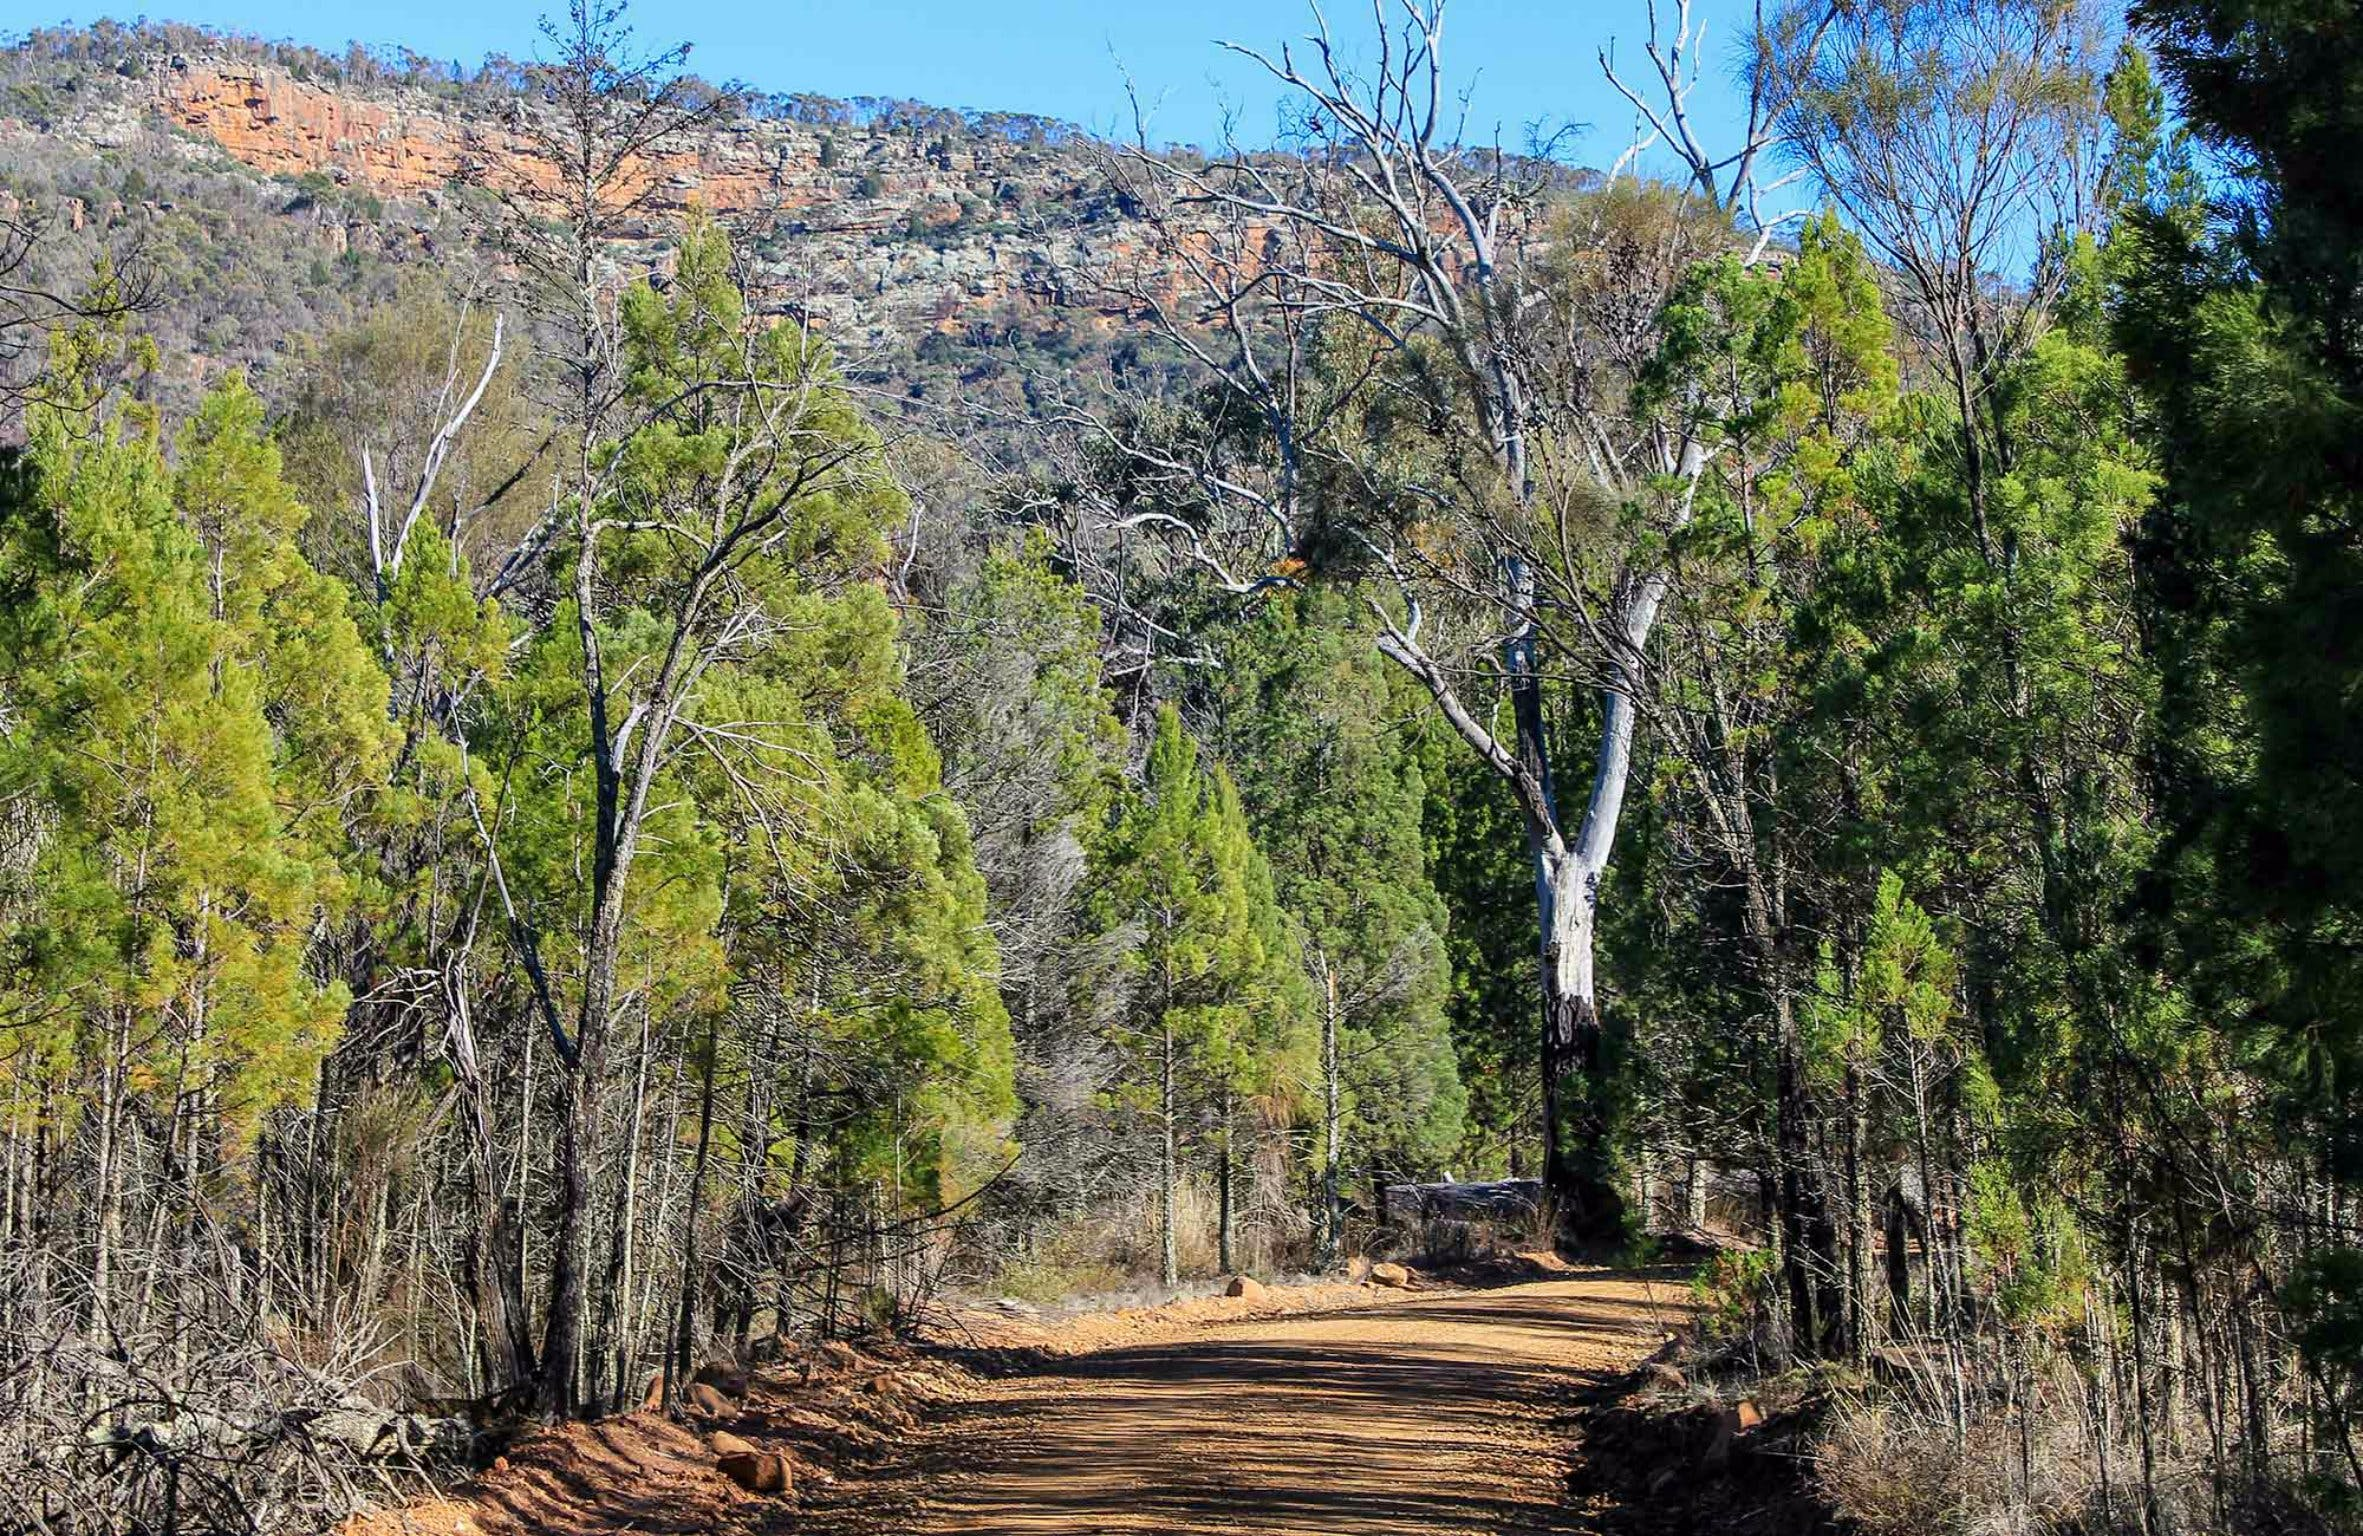 Weddin Gap to Black Spring Loop Trail - Accommodation Sunshine Coast